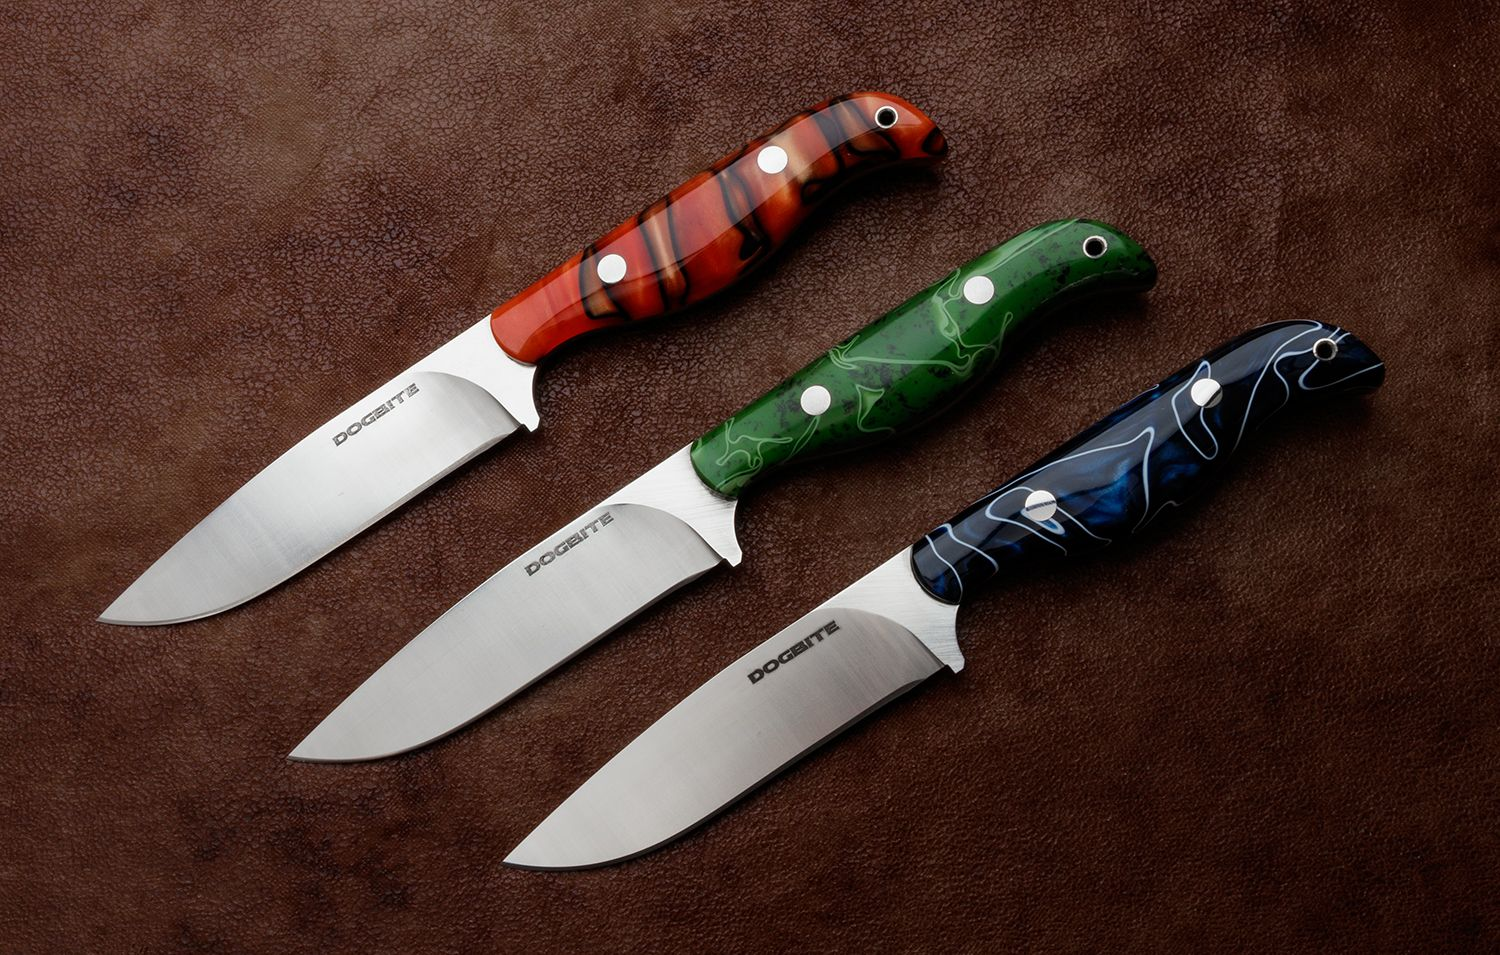 Orange, Green, and Blue Dogbite All-Around Fixed Blade Knives on leather background